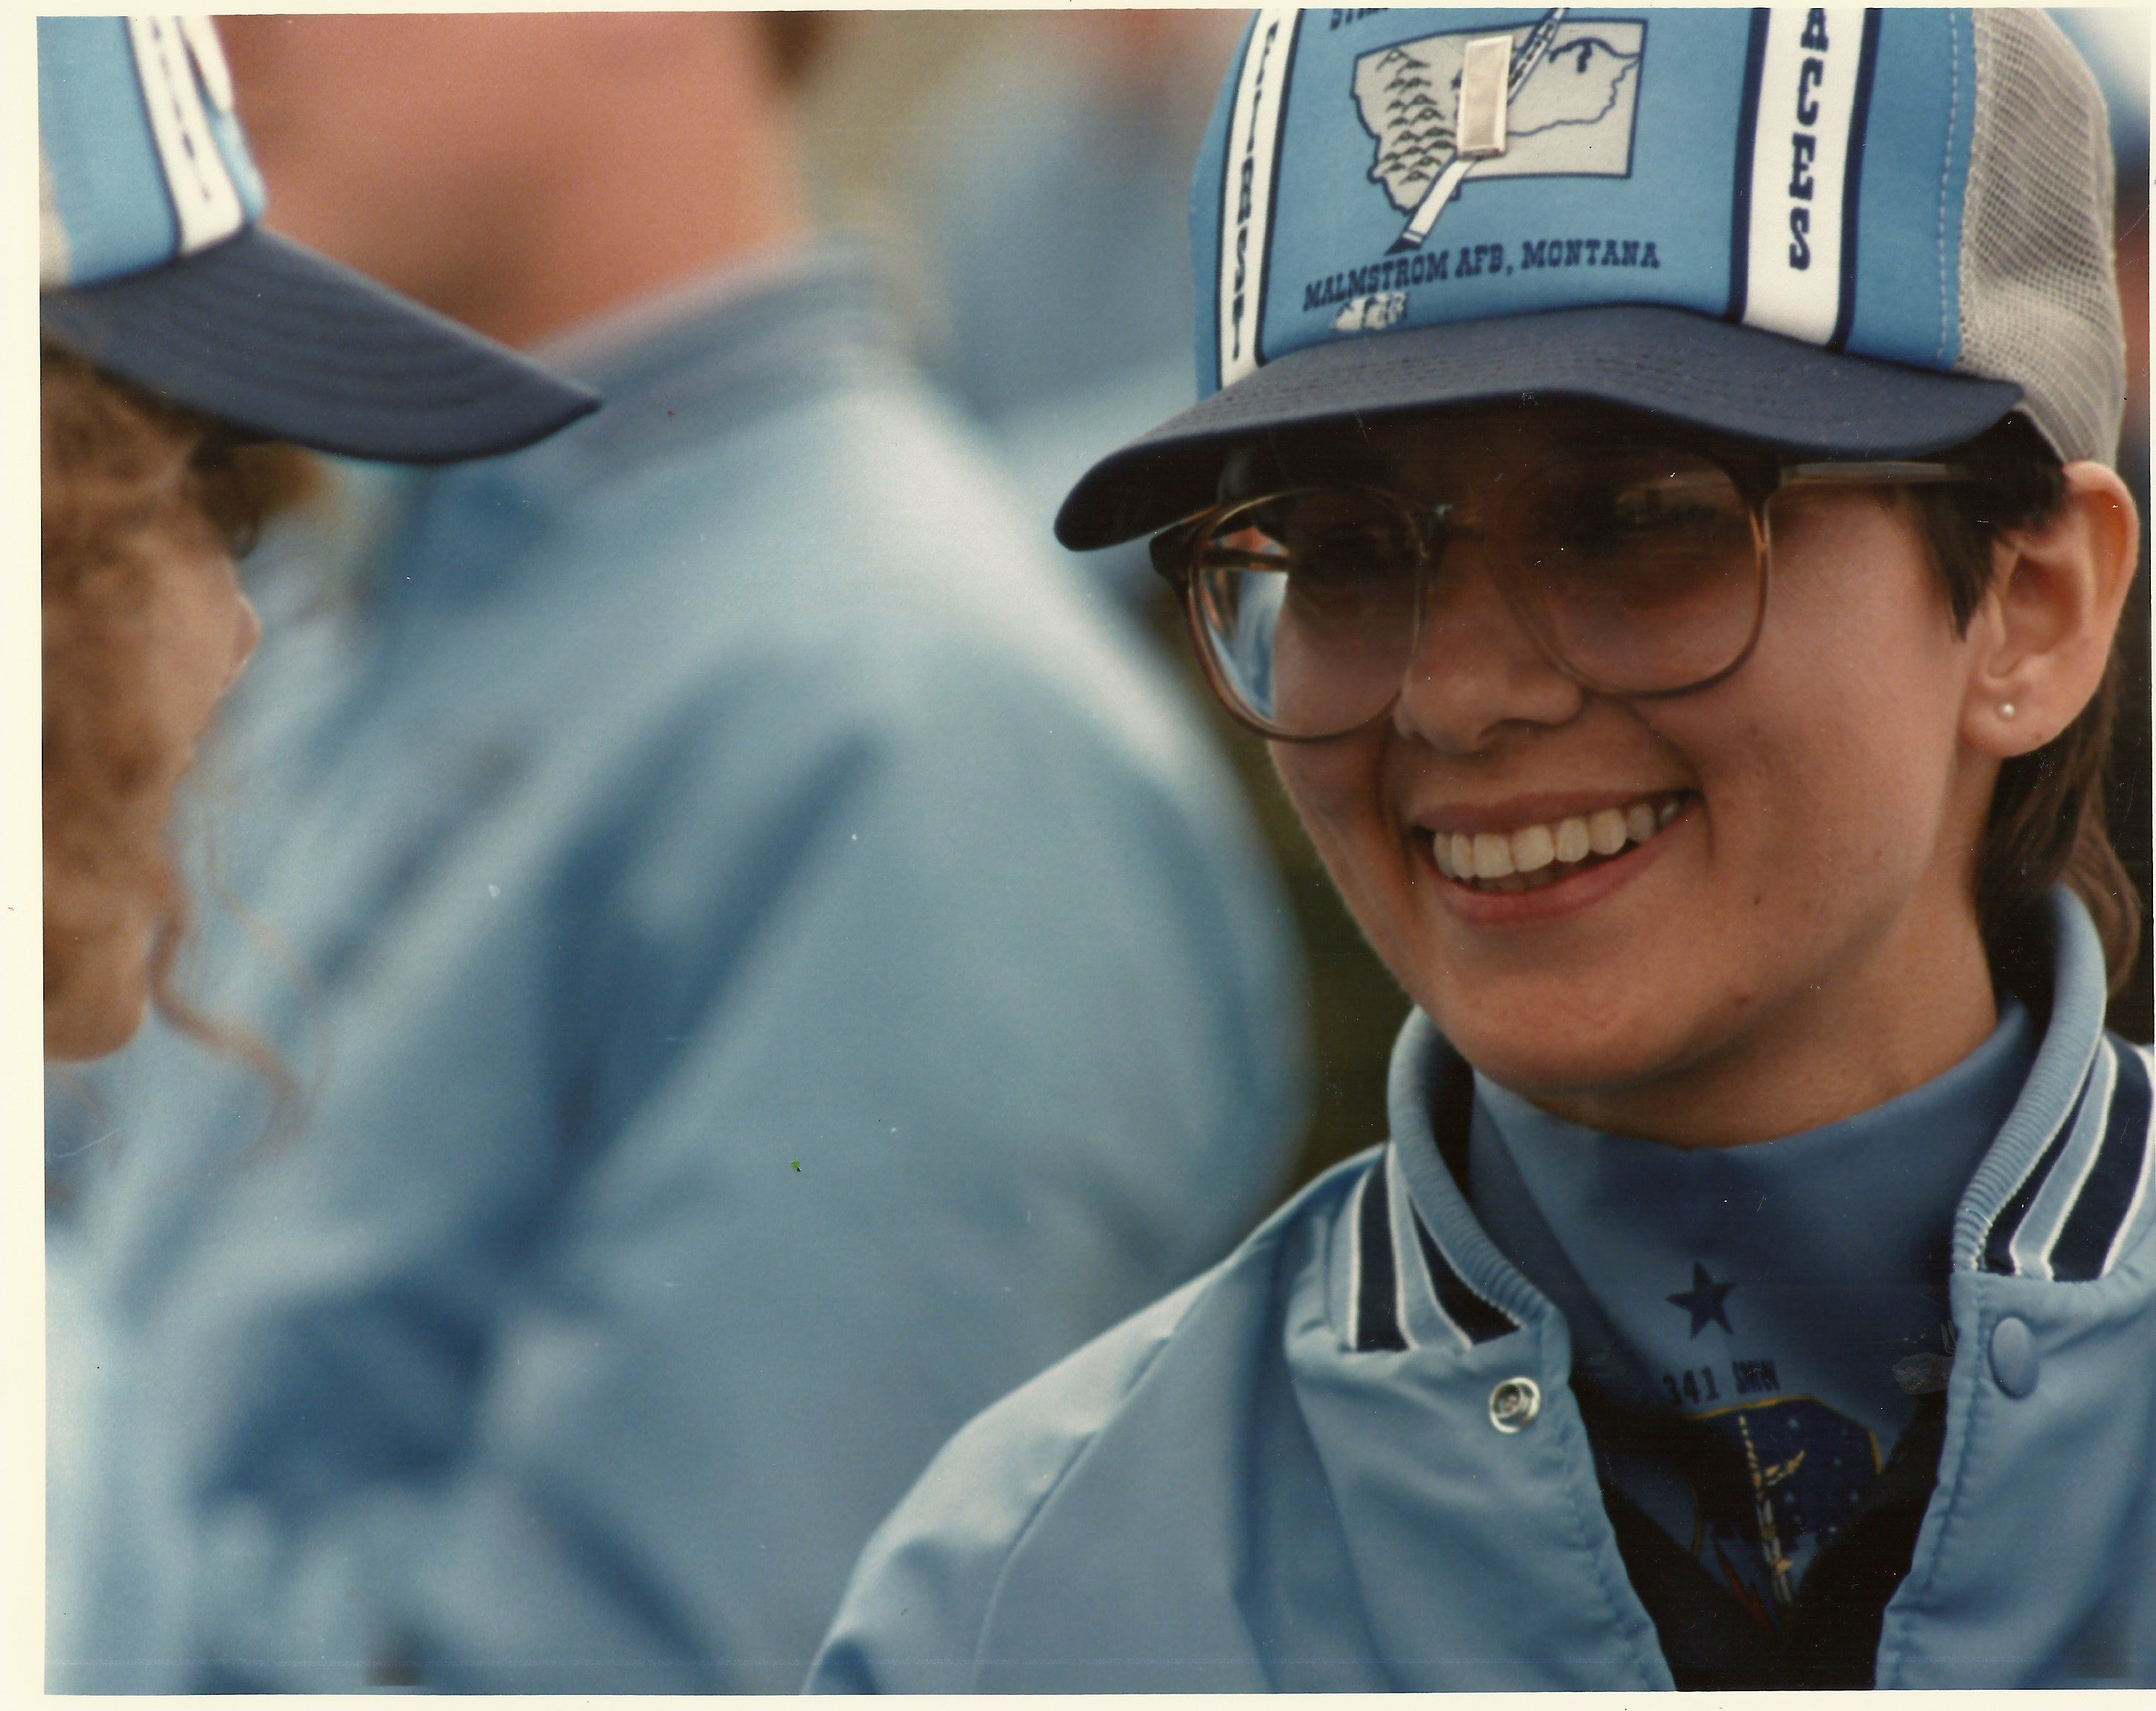 #341st Strategic Missile Wing competitor during 1988 Olympic Arena #YearoftheSACAlertForce